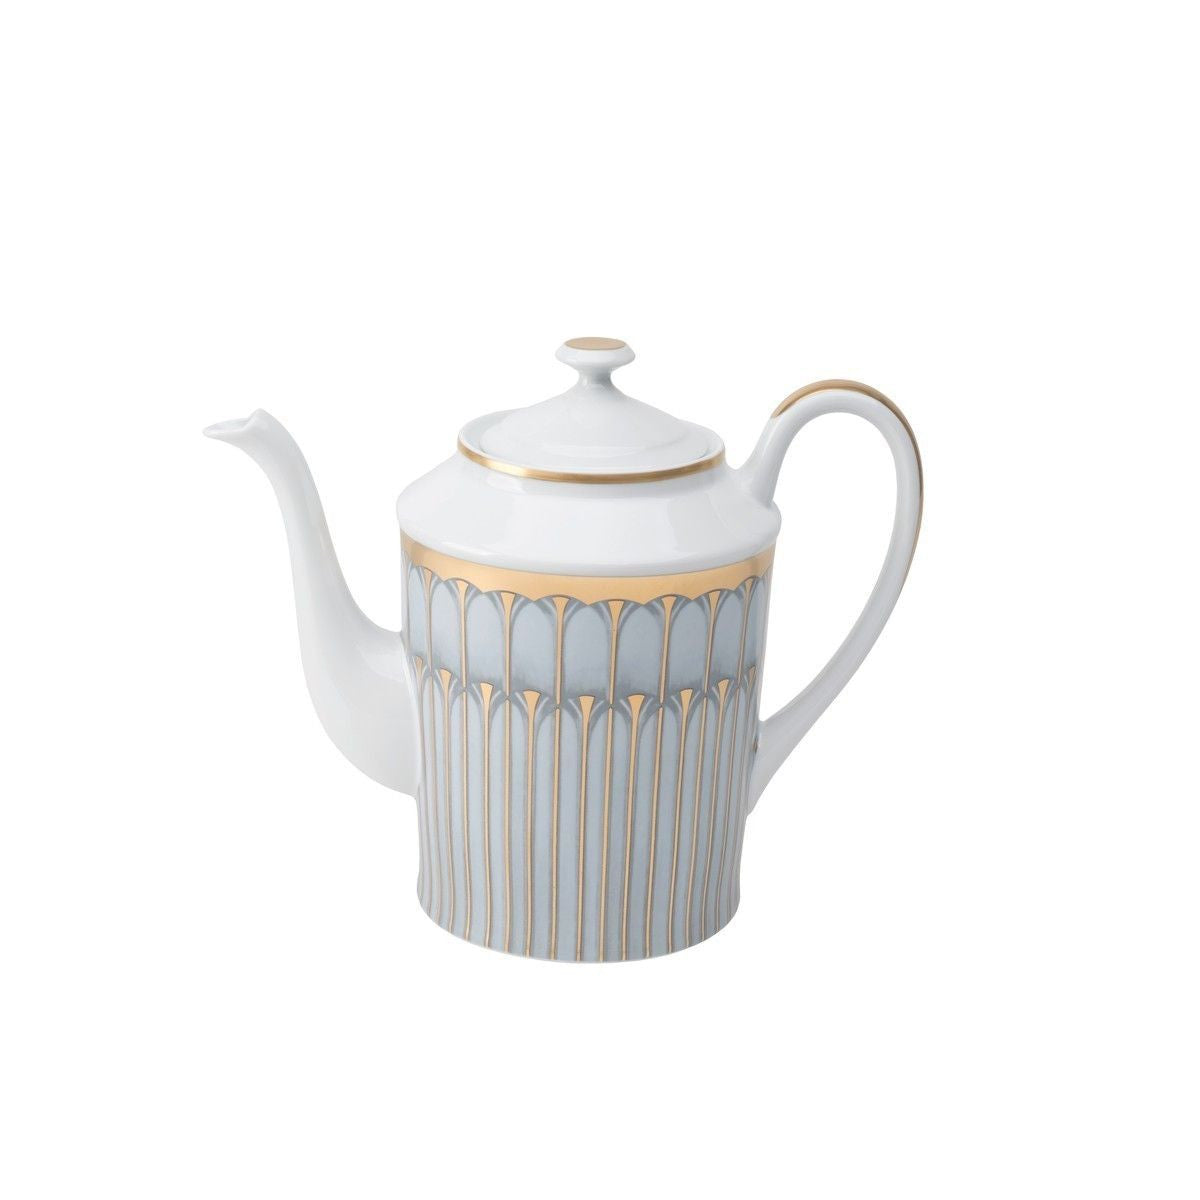 Arcades Grey & Gold Coffee Pot